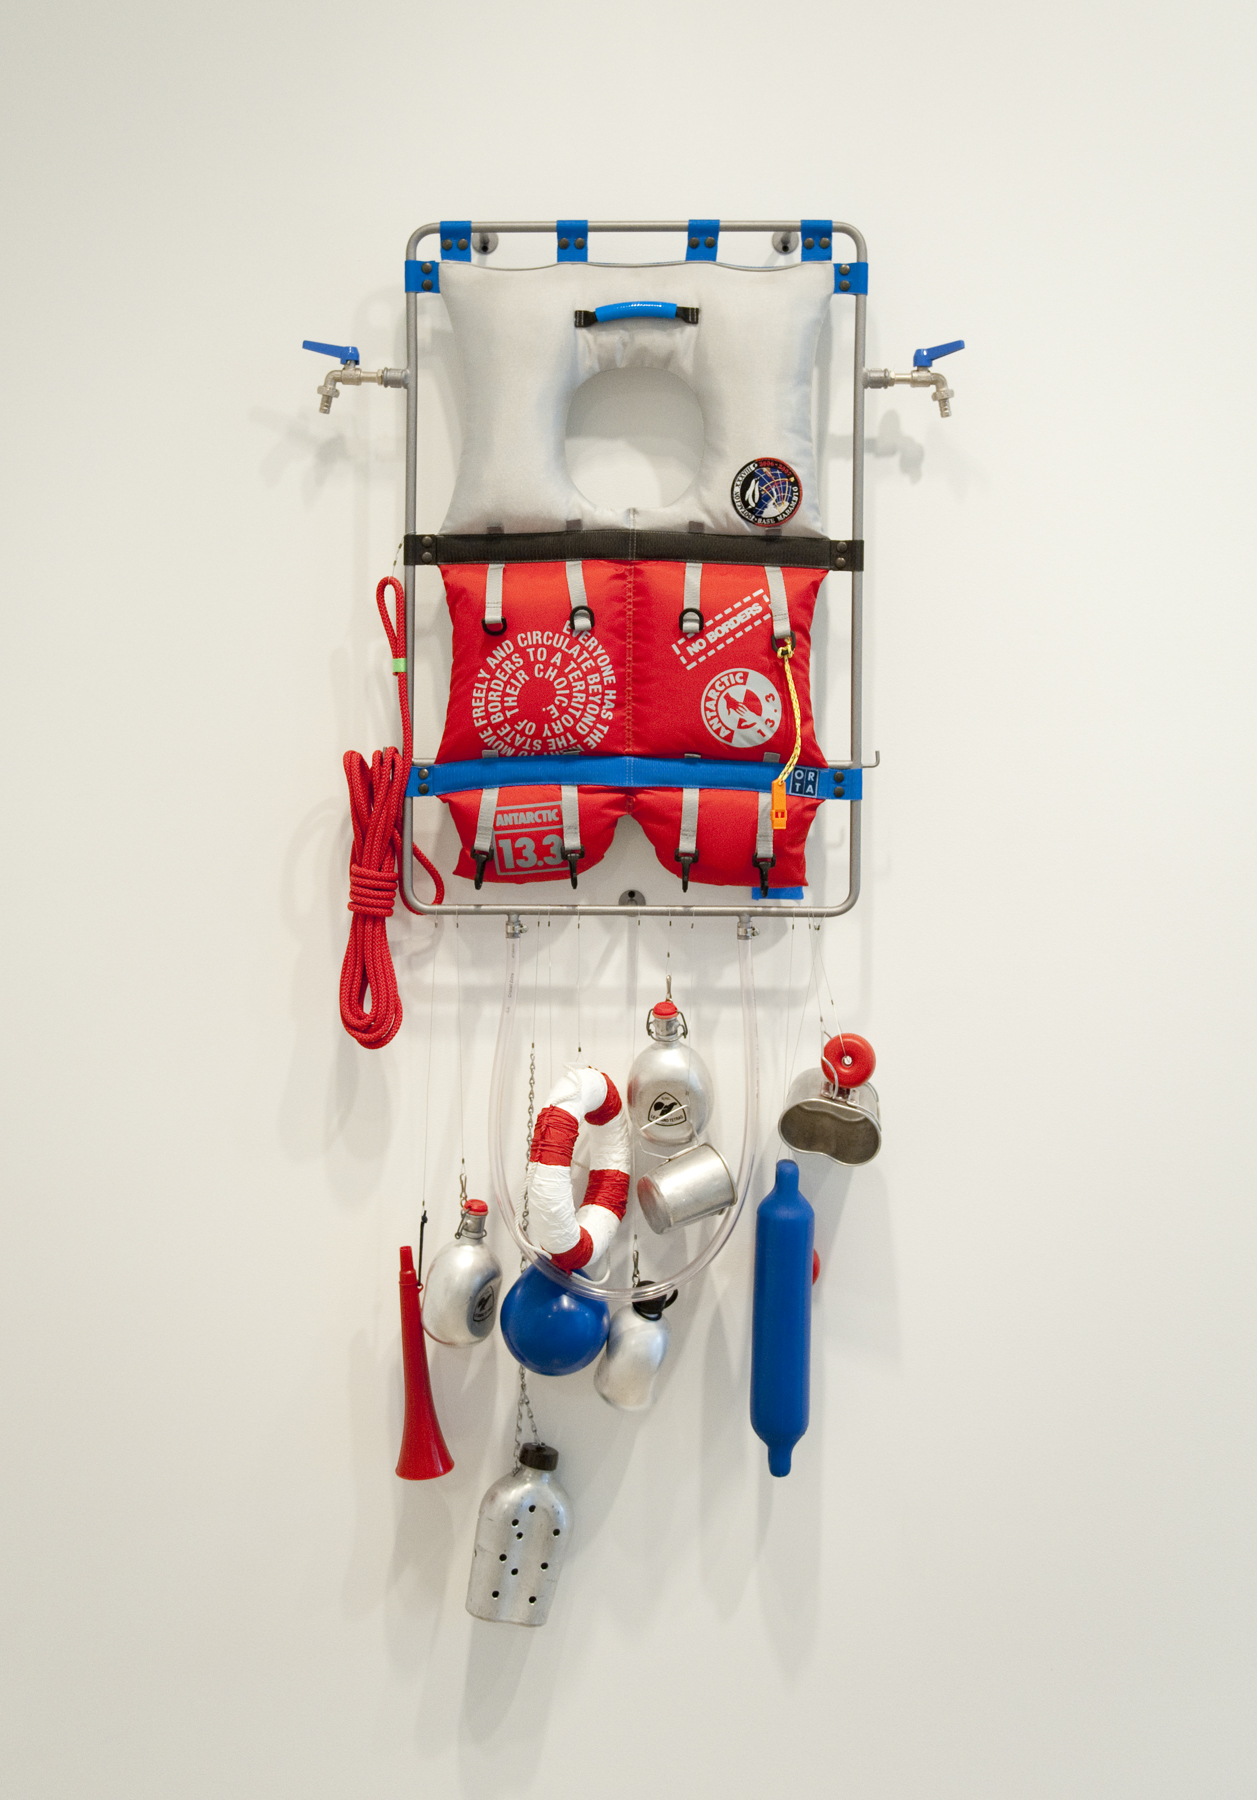 Lucy + Jorge Orta   Life Line - Survival Kit , 2008 steel frame, 2 taps, piping, various textiles, silkscreen print, webbing, rope, 2 floats, ring, horn, various water flasks and containers 59.06 x 31.5 x 5.91 inches 150 x 80 x 15 cm